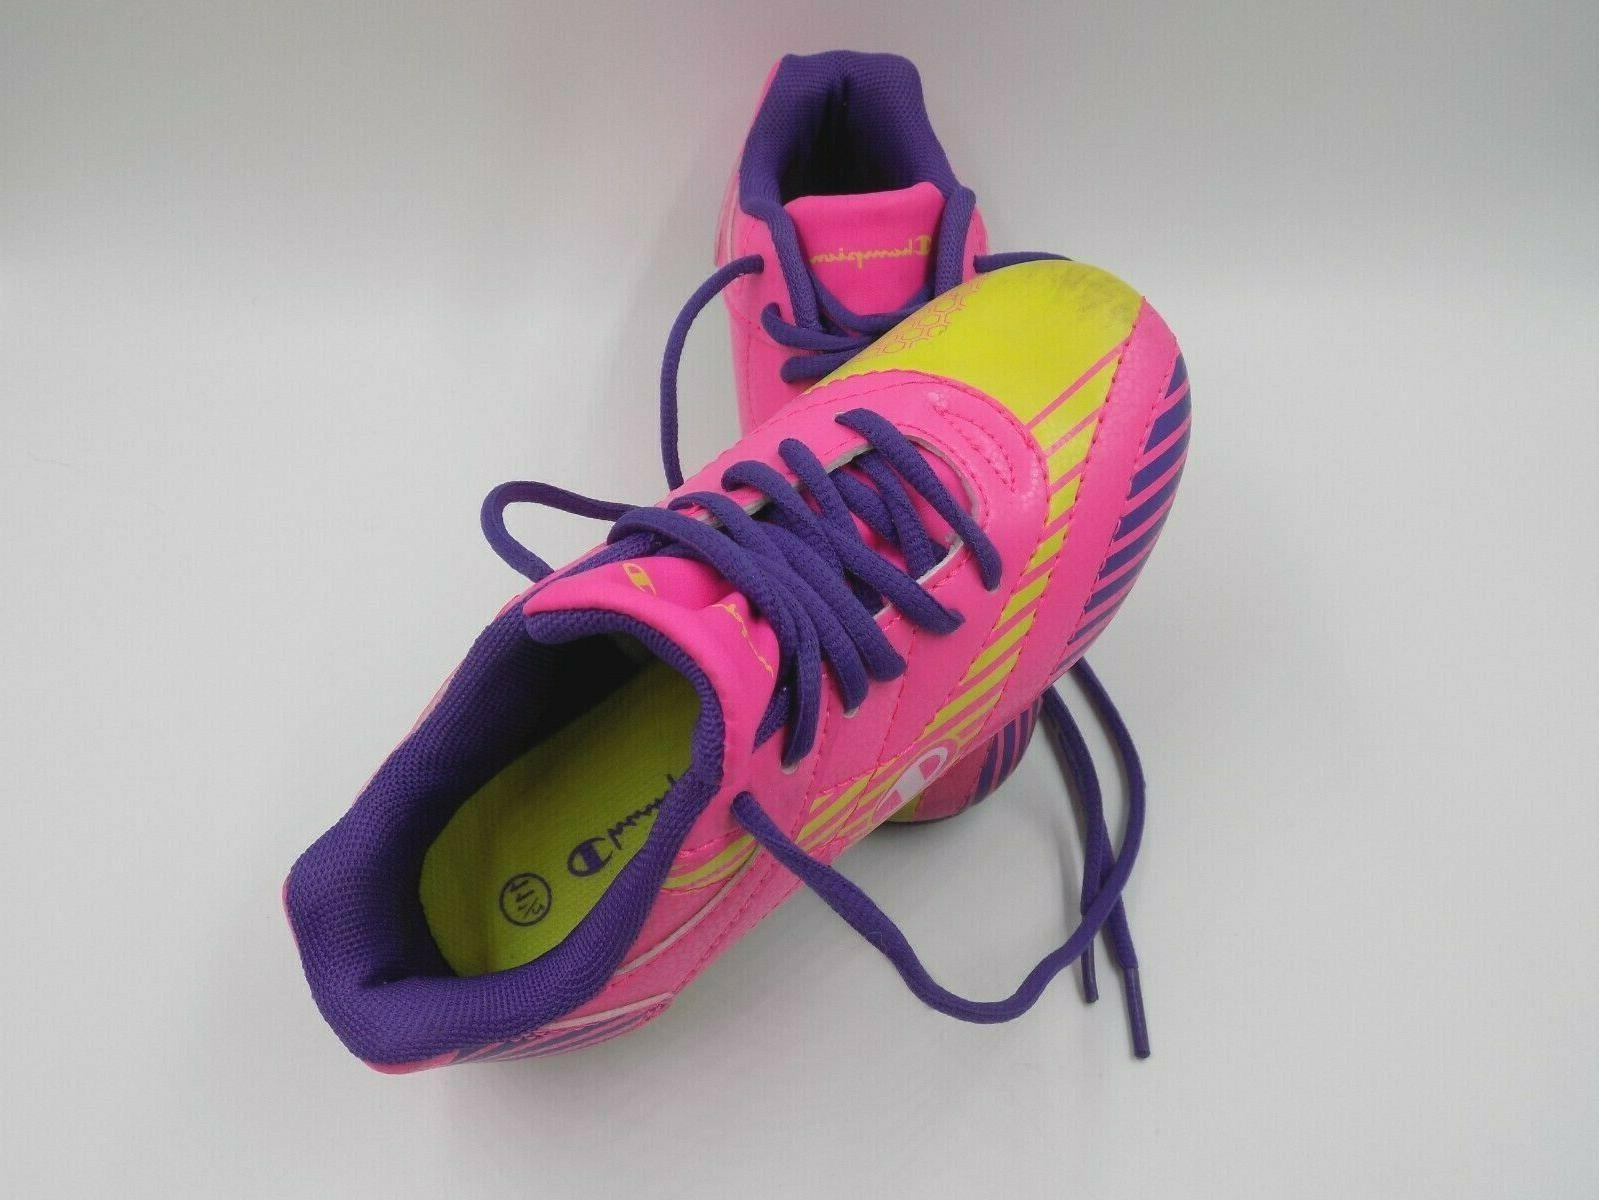 soccer cleats girls size 11 5